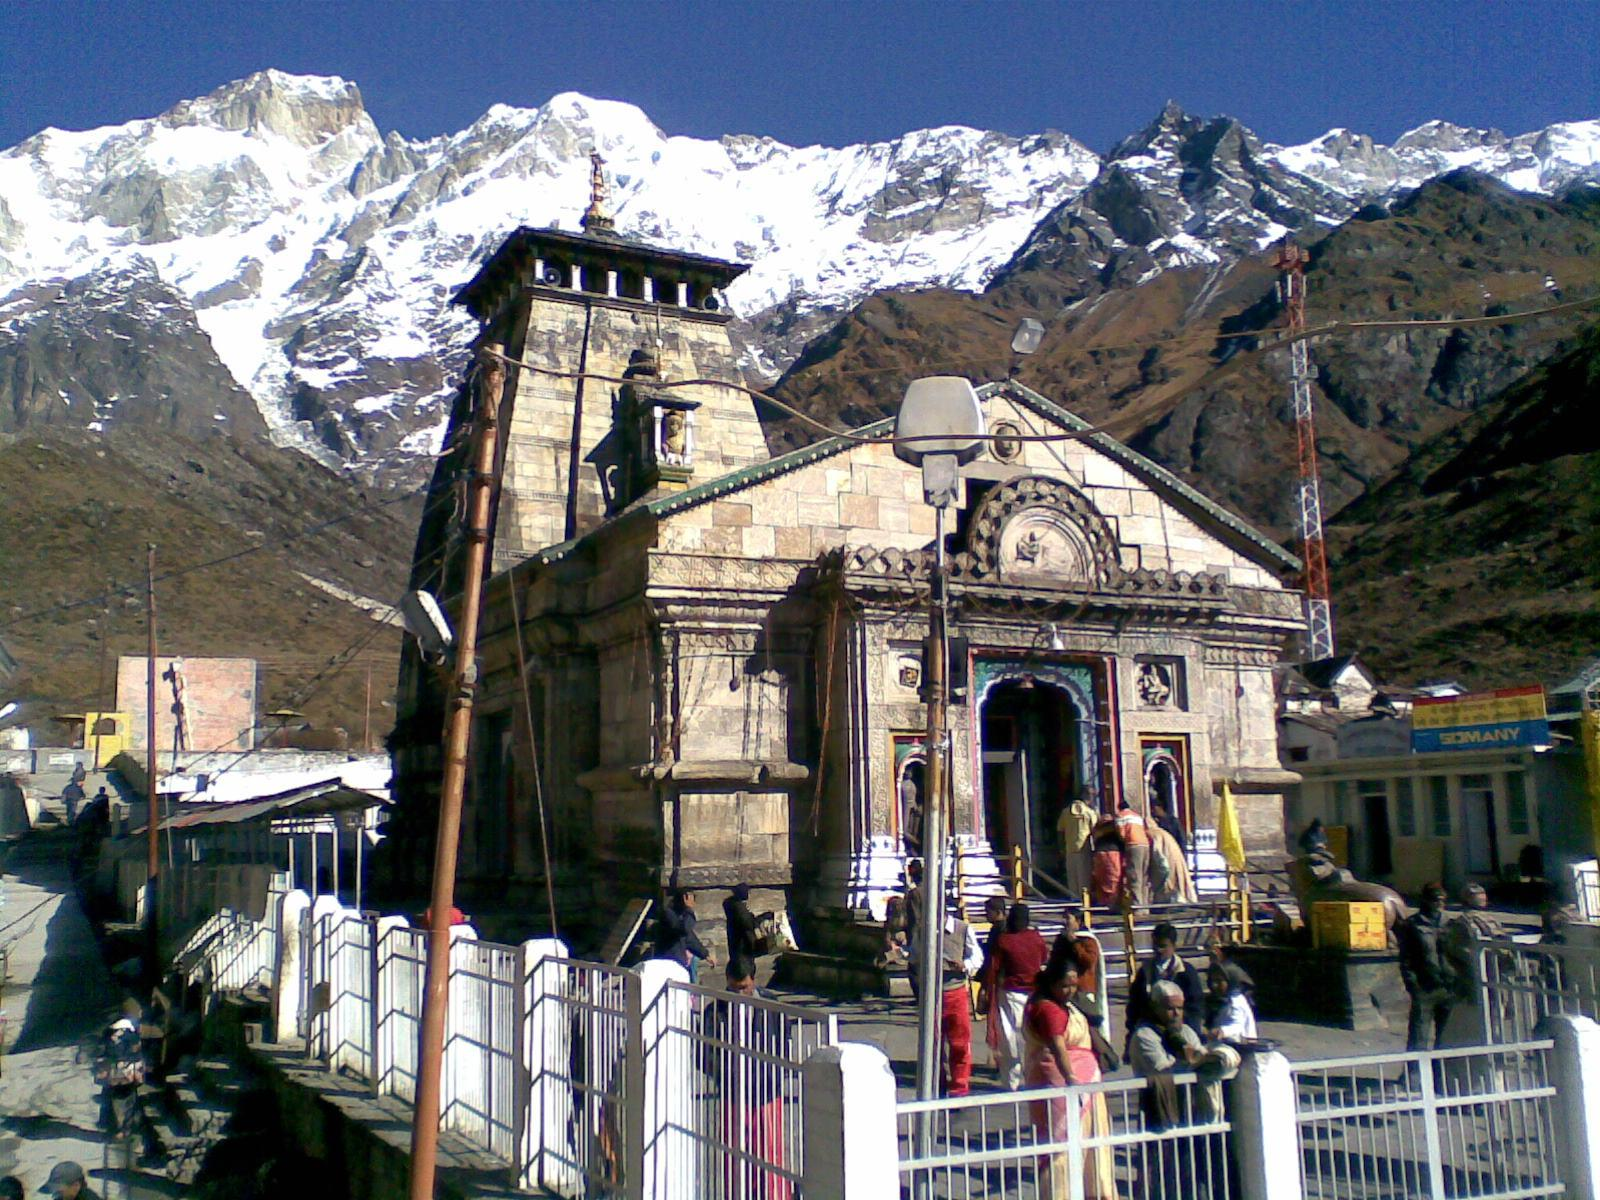 helicopter to kedarnath temple with Uttarakhand Govenment Disaster Helpline Numbers Kedarnath2013 on A Model Displays Creation By Gitanjali Gems 328412 further Army Heroes Lead Uttarakhand Rescue Operations 15403 further Badrinath Dham Temple Hd Wallpapers Images Pics Free Download also Uttarakhand Govenment disaster helpline numbers Kedarnath2013 in addition Amarnath Yatra 2017.